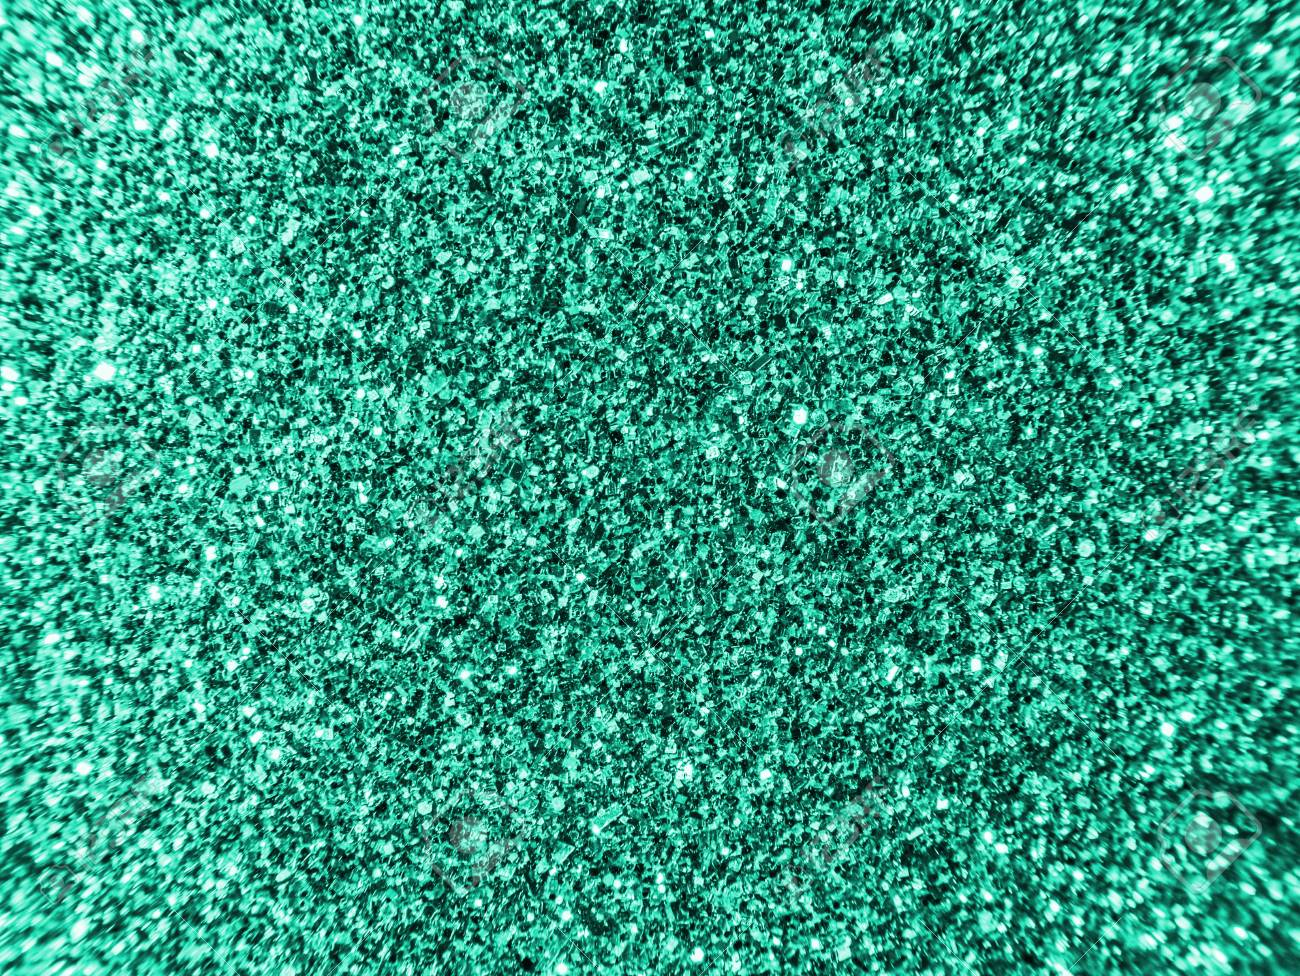 Background Sequin Turquoise Background Glitter Surfactant Stock Photo Picture And Royalty Free Image Image 115488136